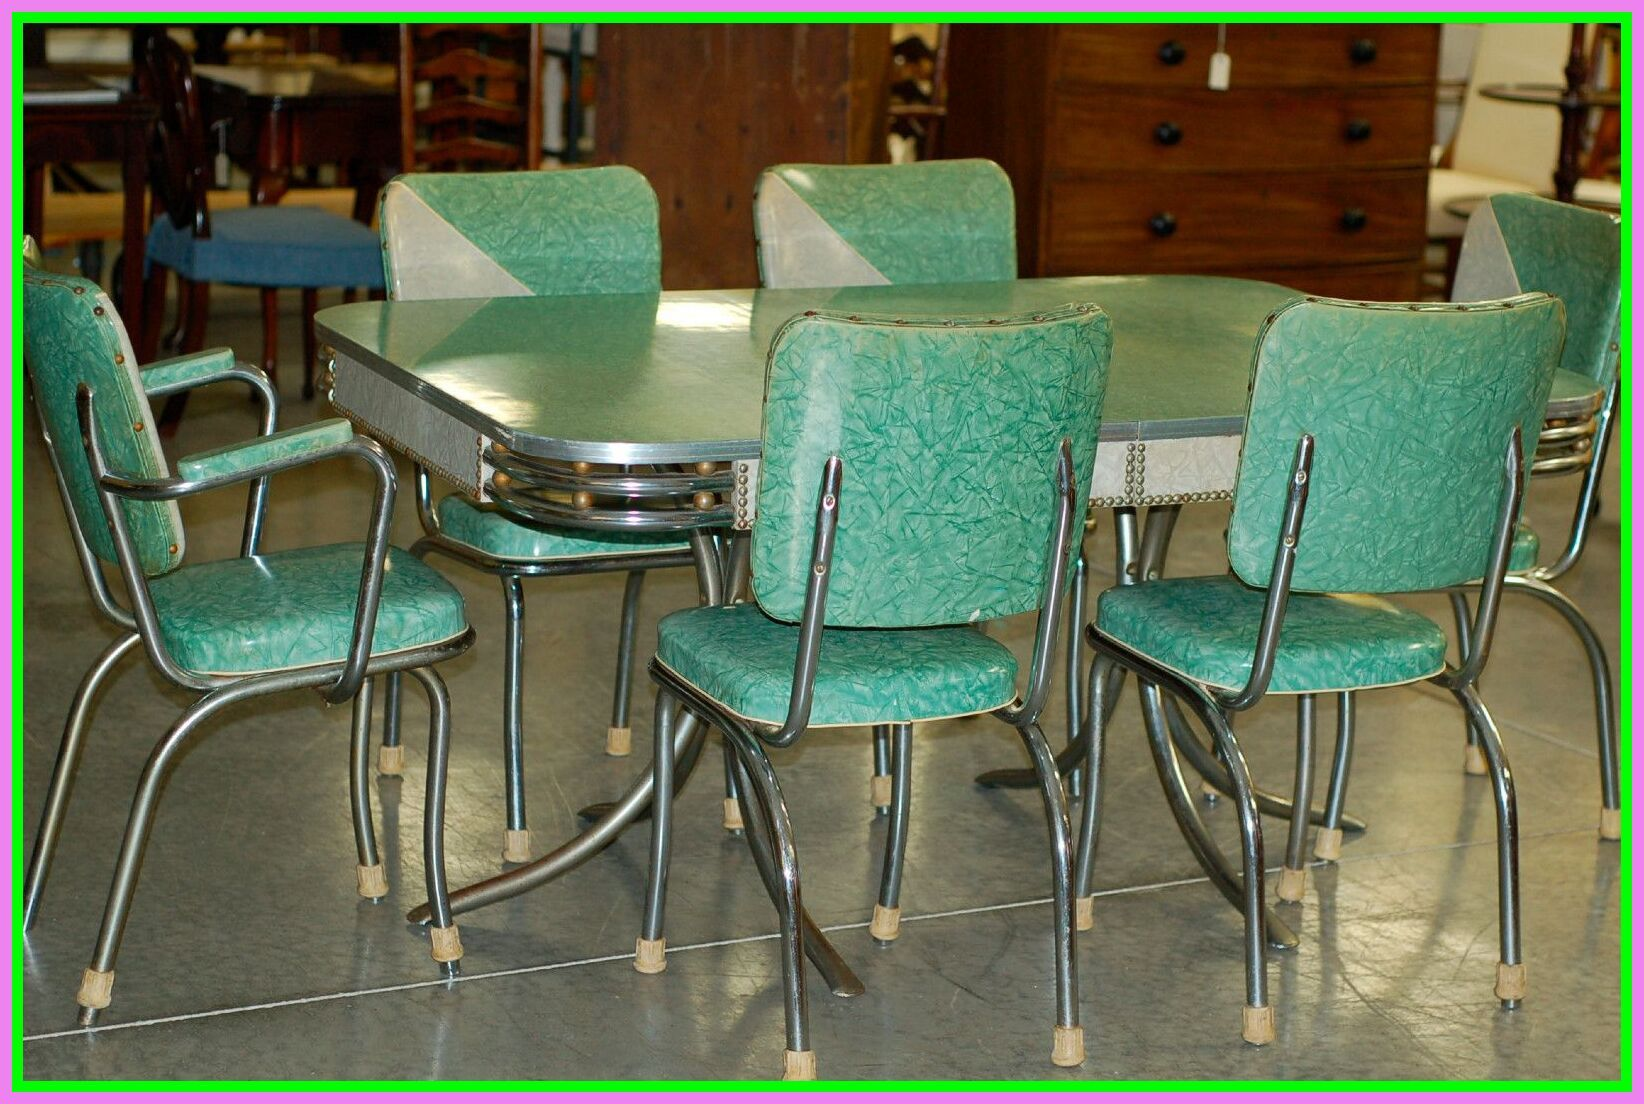 64 Reference Of Vintage Formica Table And Chairs In 2020 Retro Kitchen Tables Kitchen Table Settings Vintage Kitchen Table